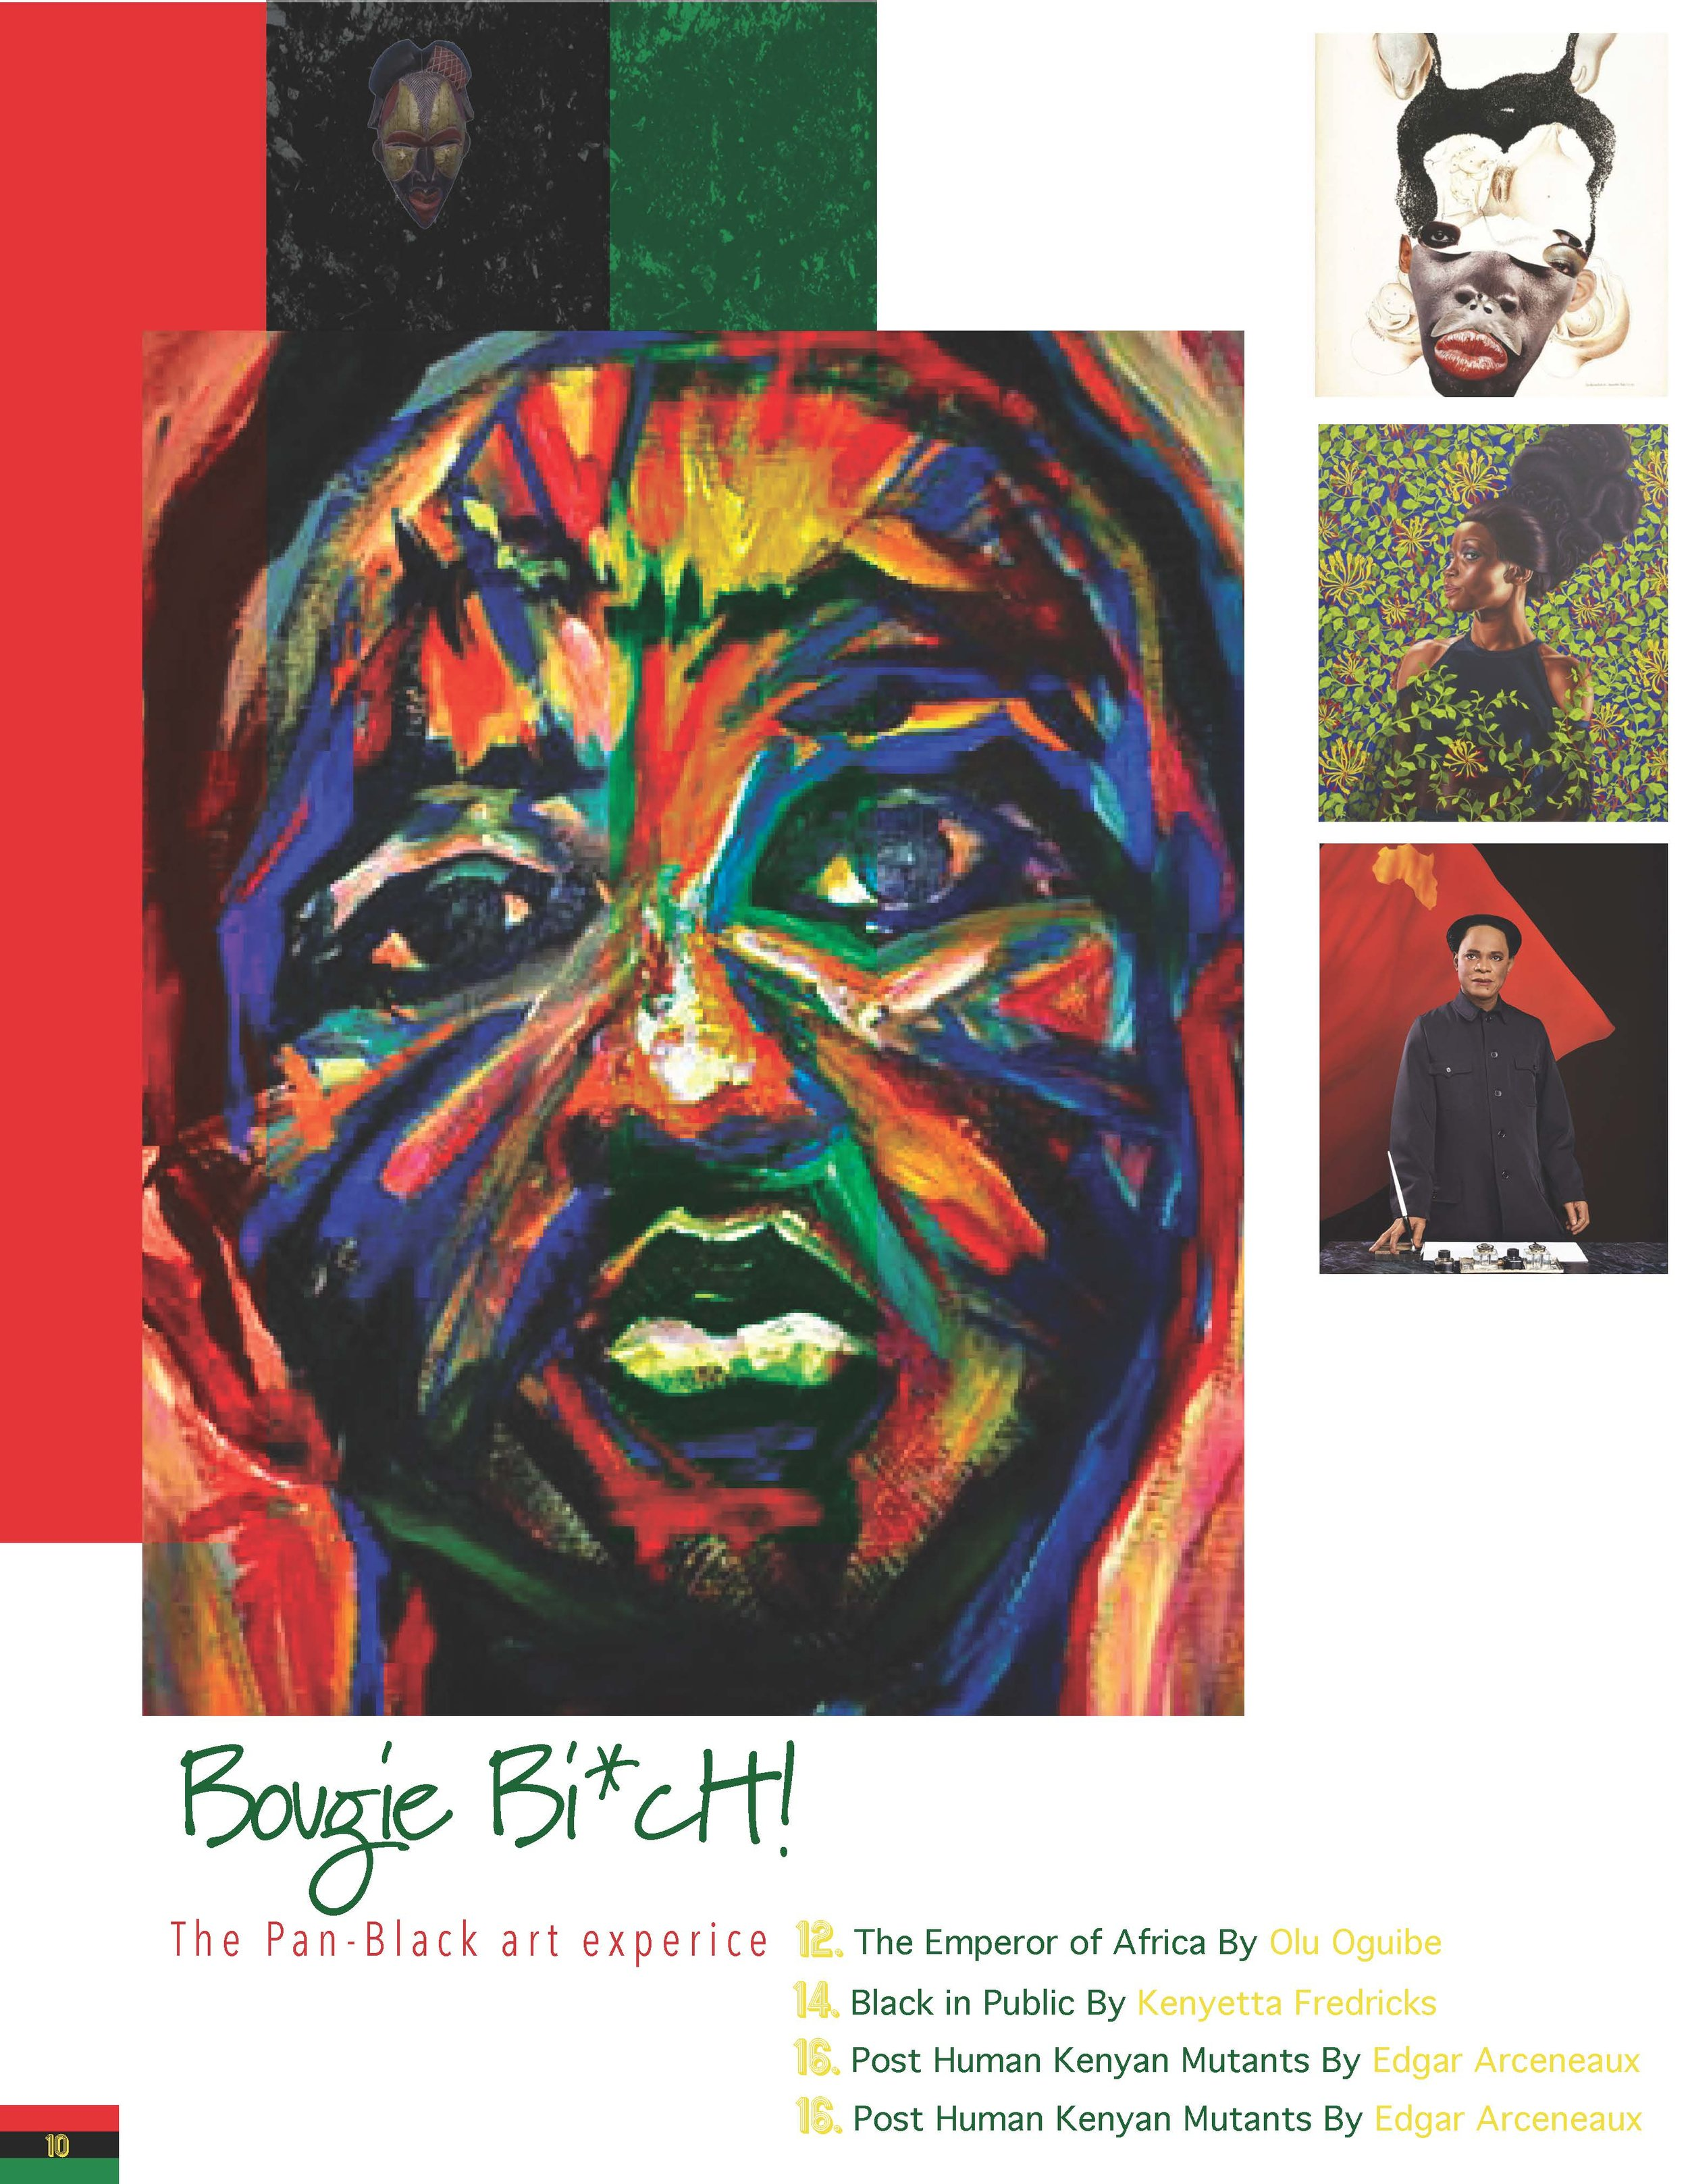 """Another Attempt At Art, """"Bougie Bi*ch!"""" Department Opener"""